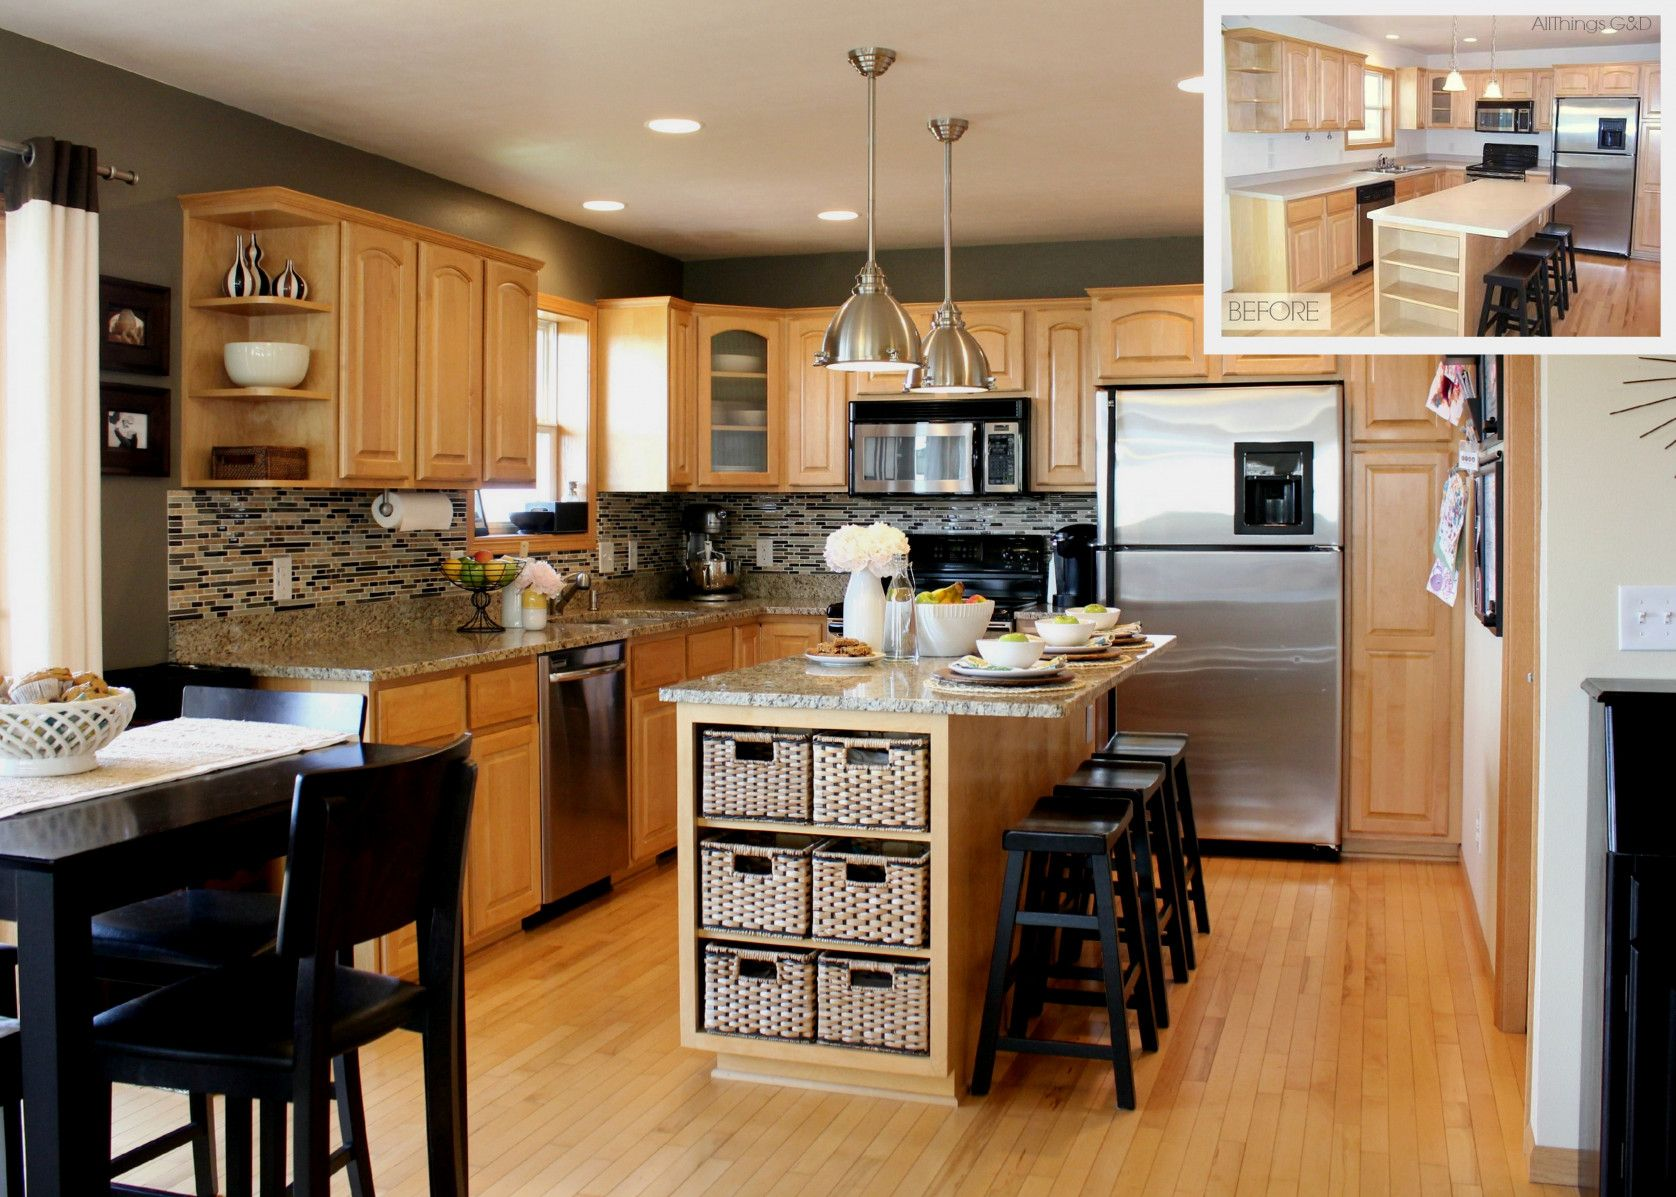 2018 Kitchen Paint Colors With Oak Cabinets Kitchen Cabinet Lighting Ideas Check More At Http Grey Kitchen Walls Kitchen Wall Colors Maple Kitchen Cabinets